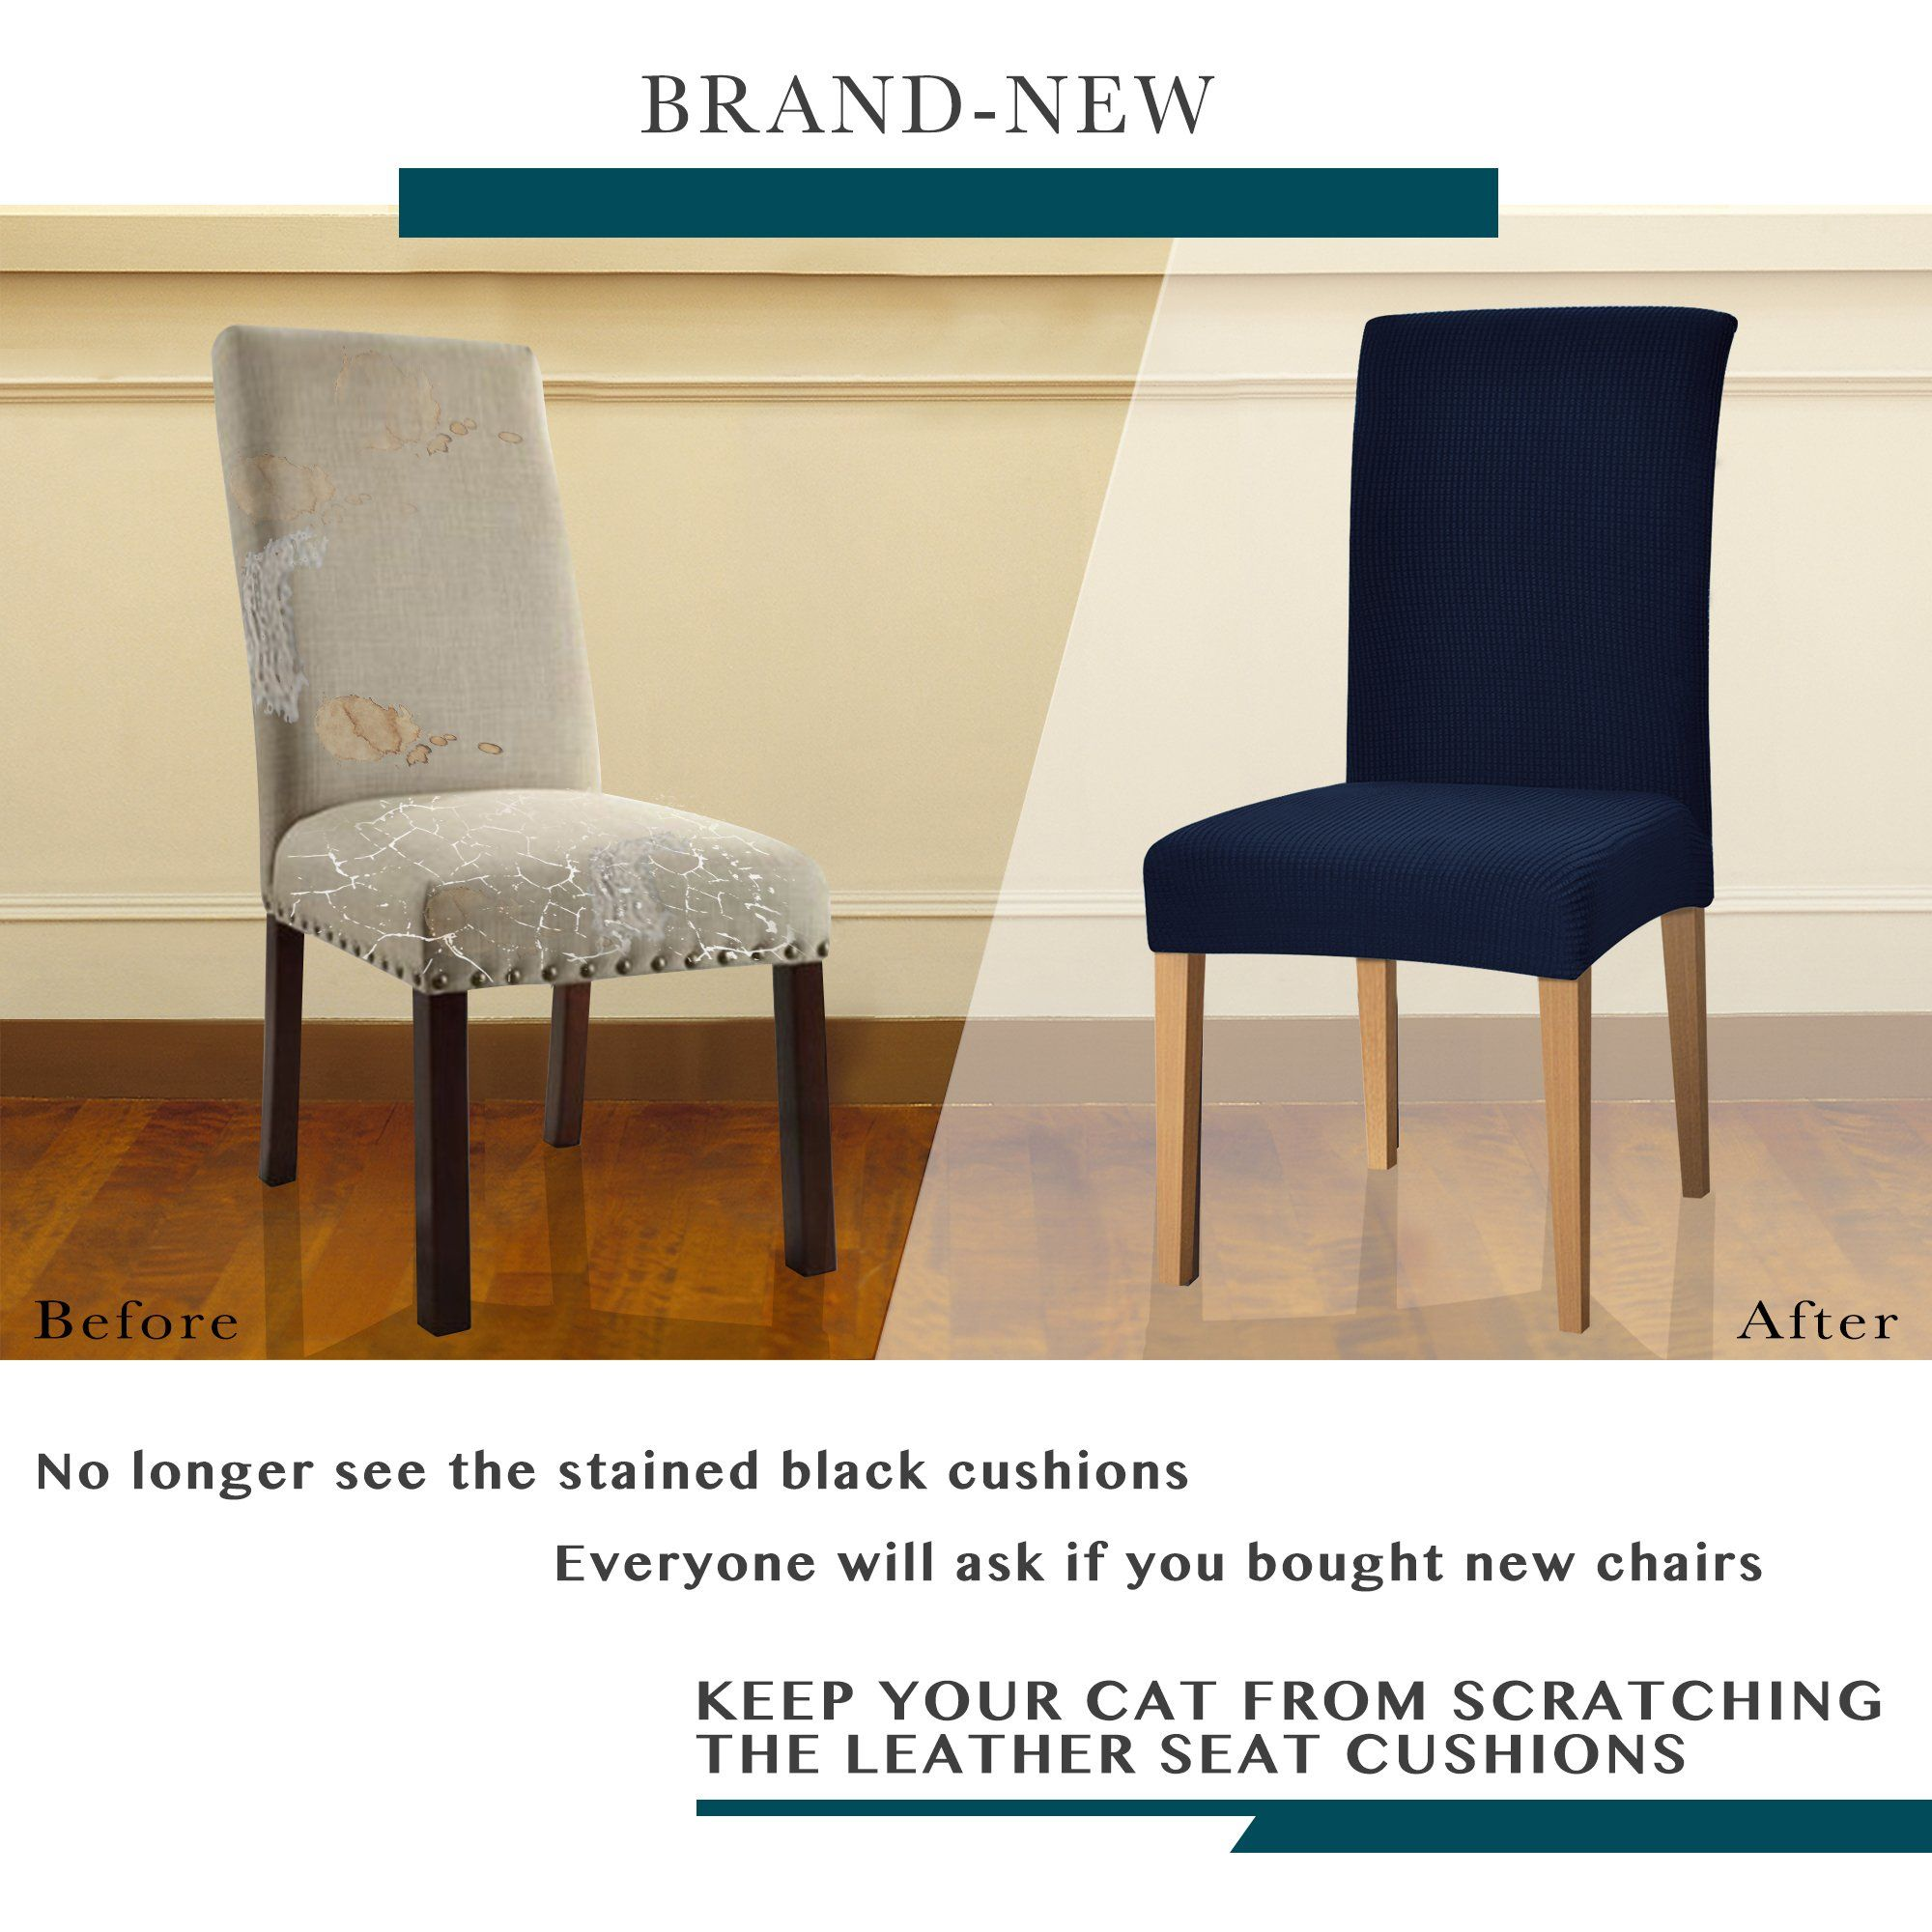 Wondrous Subrtex Chair Covers Dyed Jacquard Stretch Dining Room Chair Machost Co Dining Chair Design Ideas Machostcouk